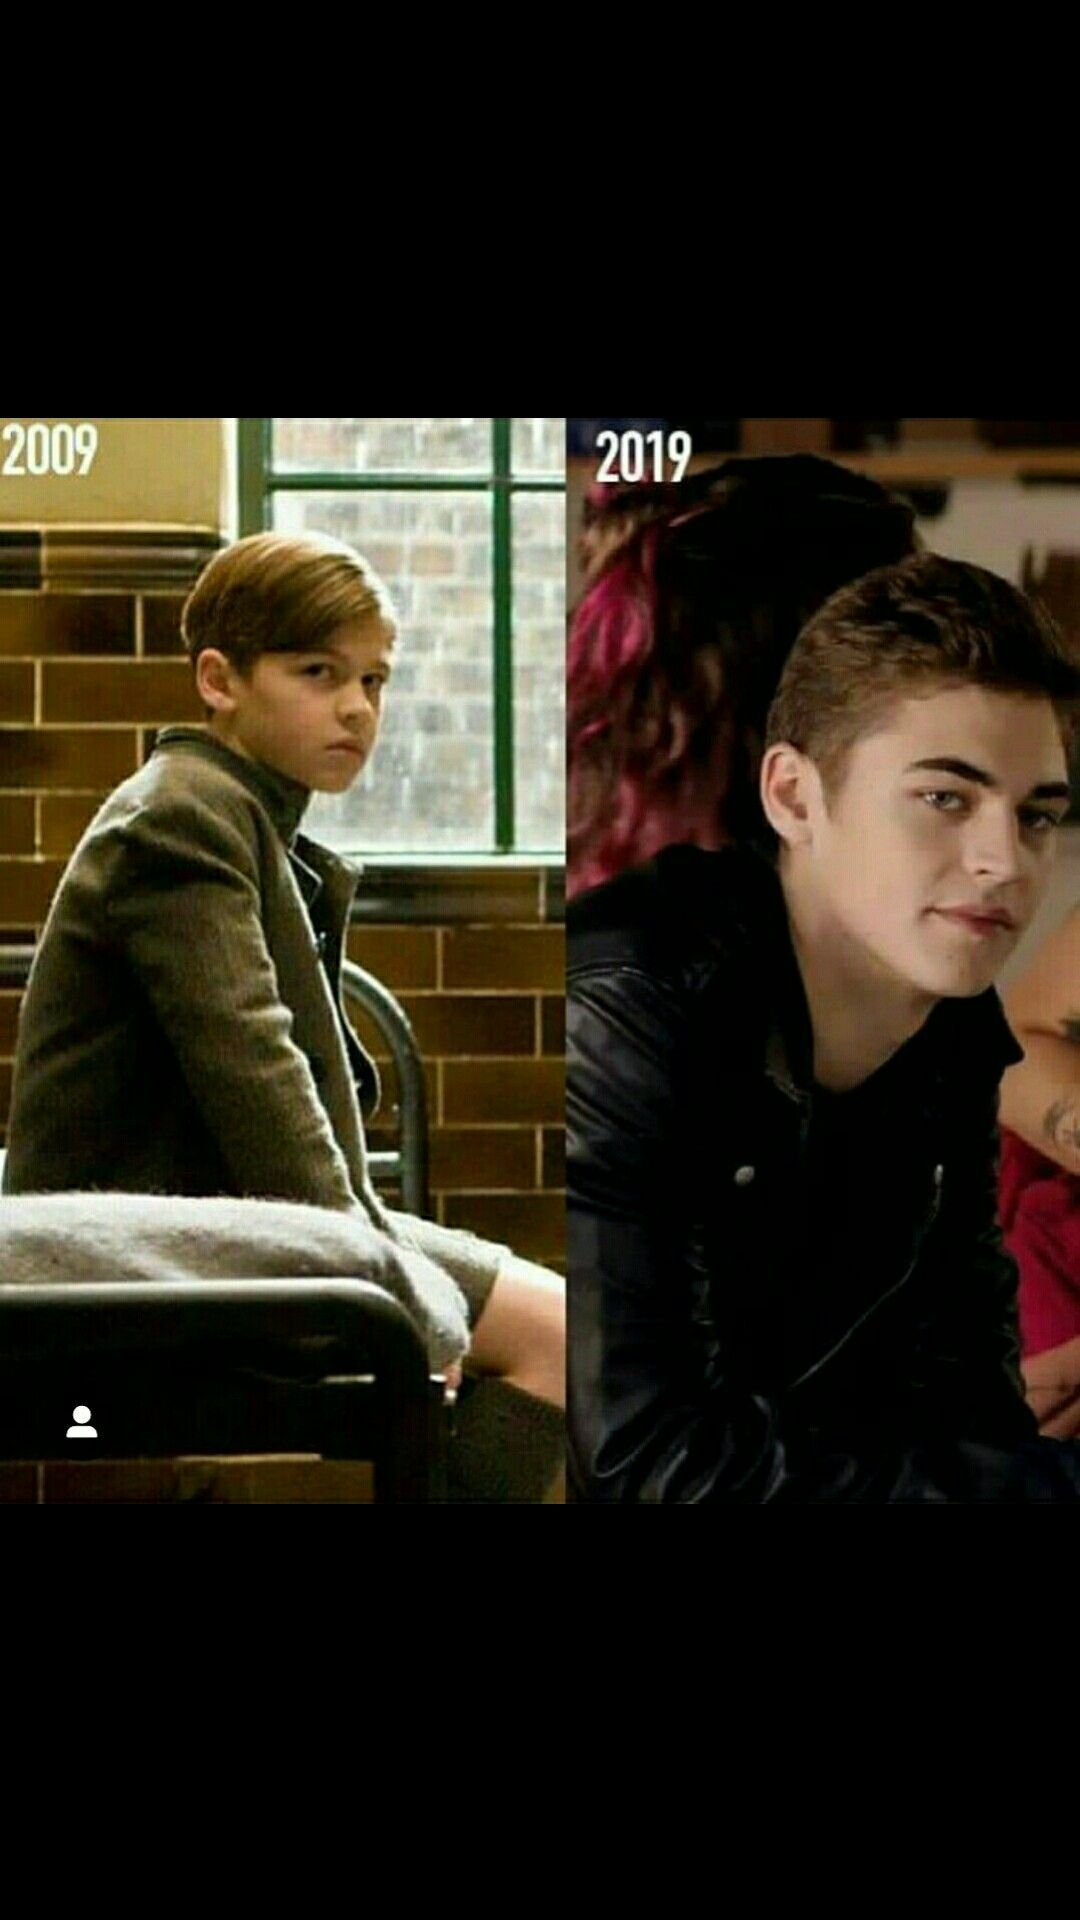 Pin By Ms Toure On Hero Fiennes Tiffin Actors Young Tom Riddle People